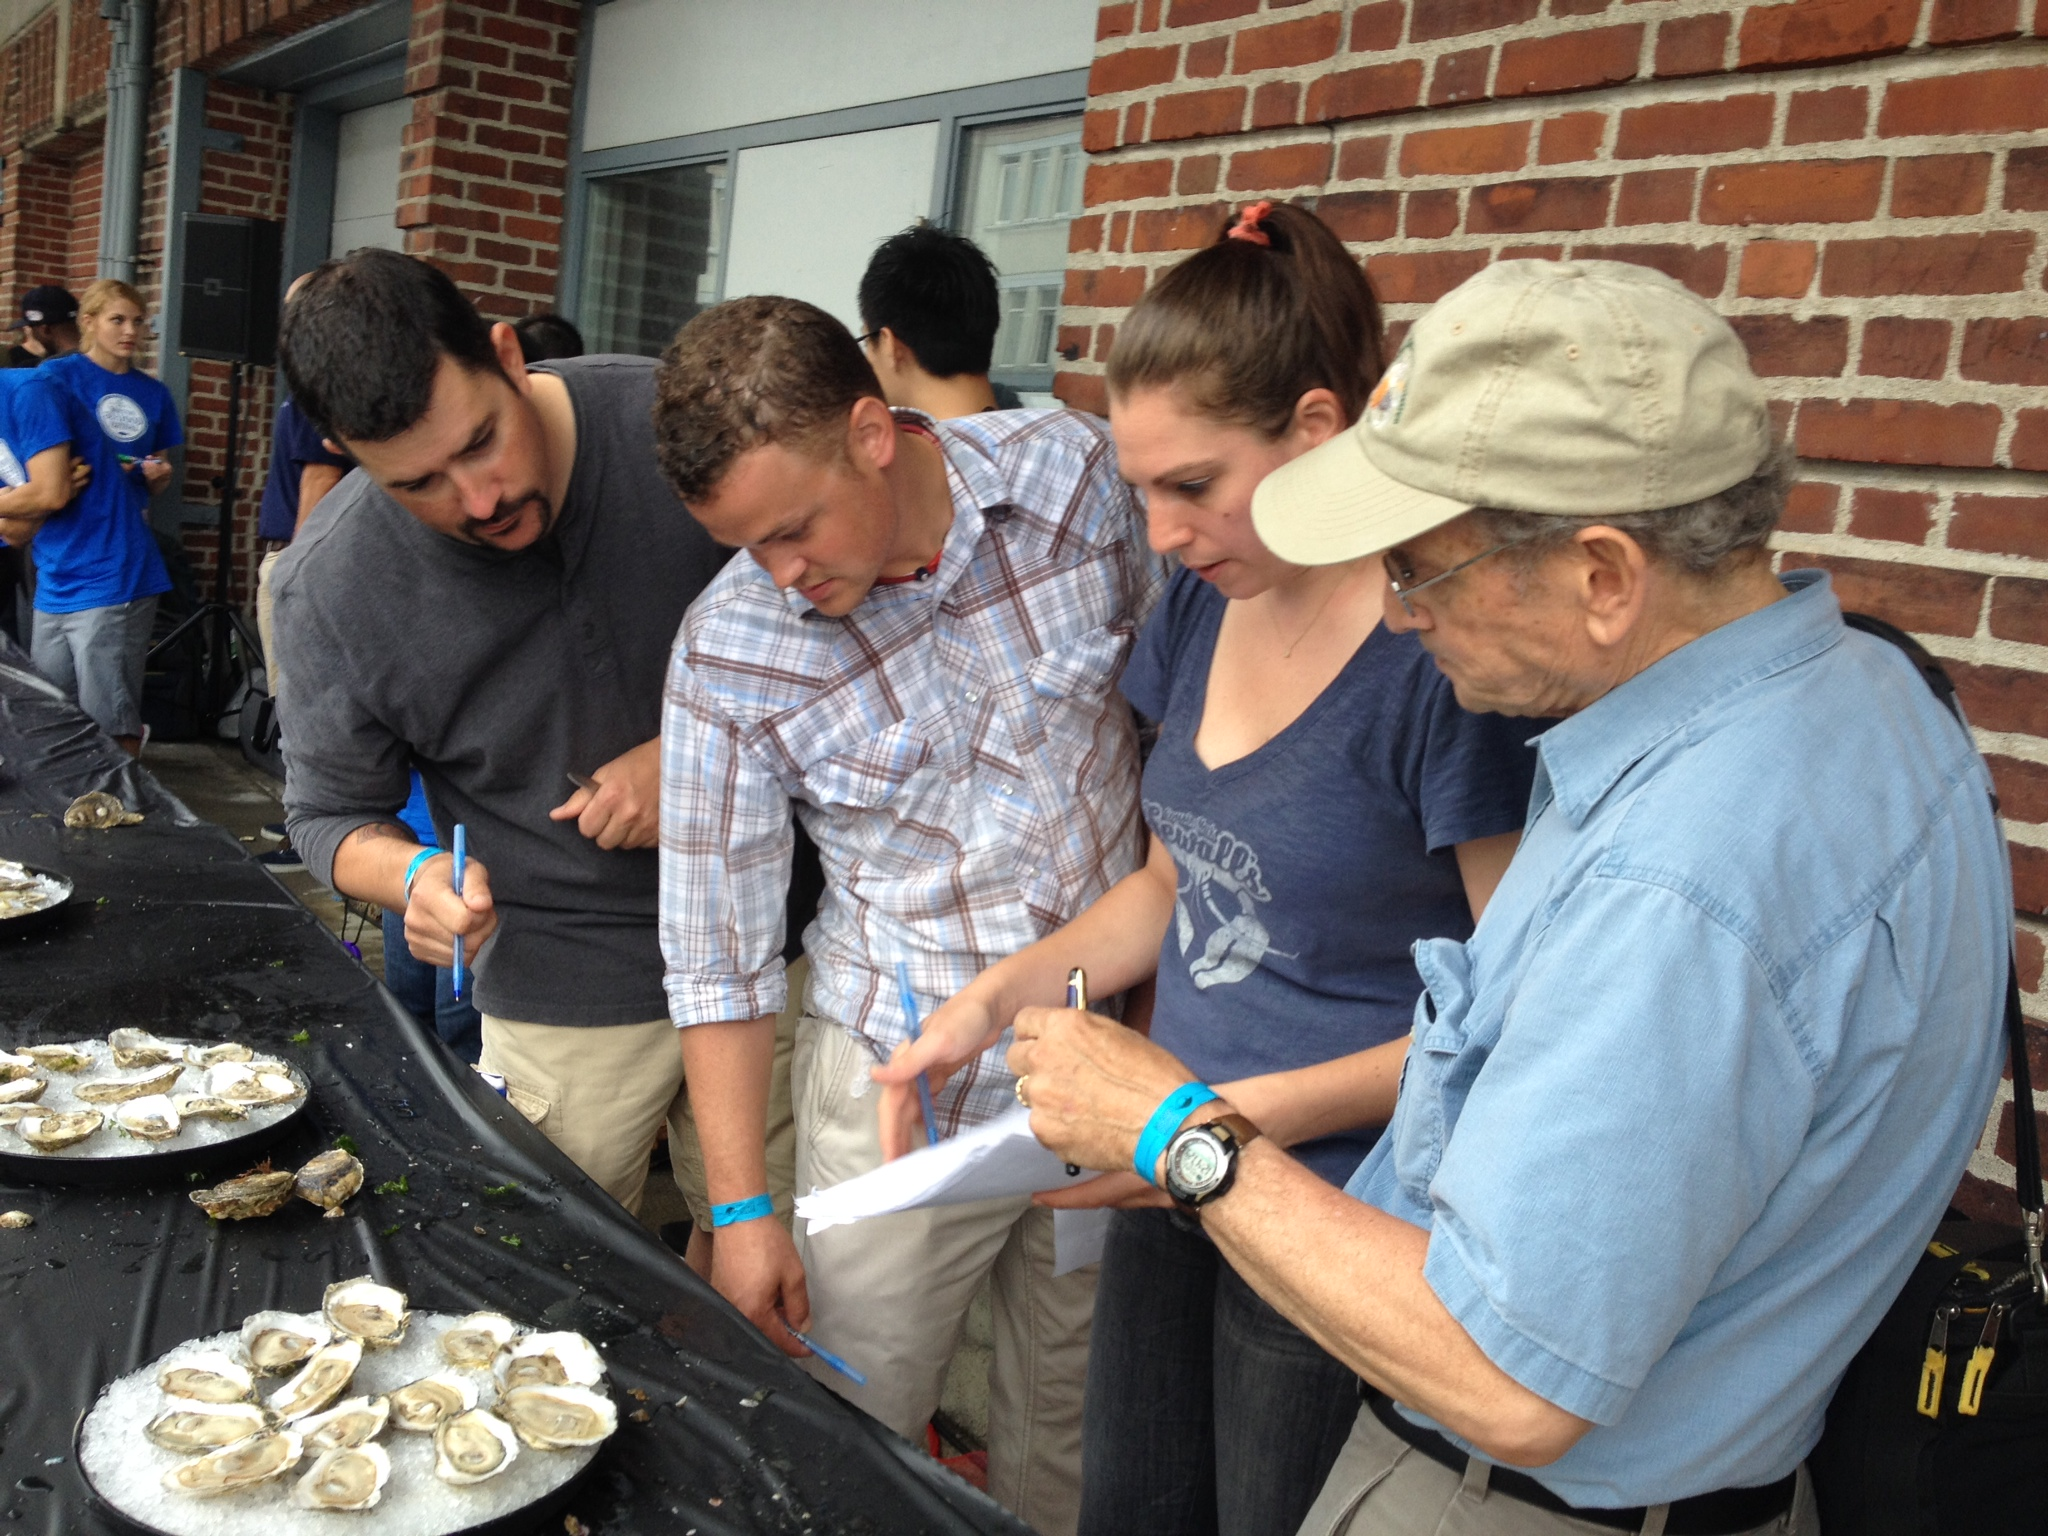 Judges taking a good look at the competition oysters. From left: Dan Enos (Oceanaire), Stephen Oxaal (B&G Oysters), Nicki Hobson (Island Creek Oyster Bar), and Richard Rush (Oyster Information).